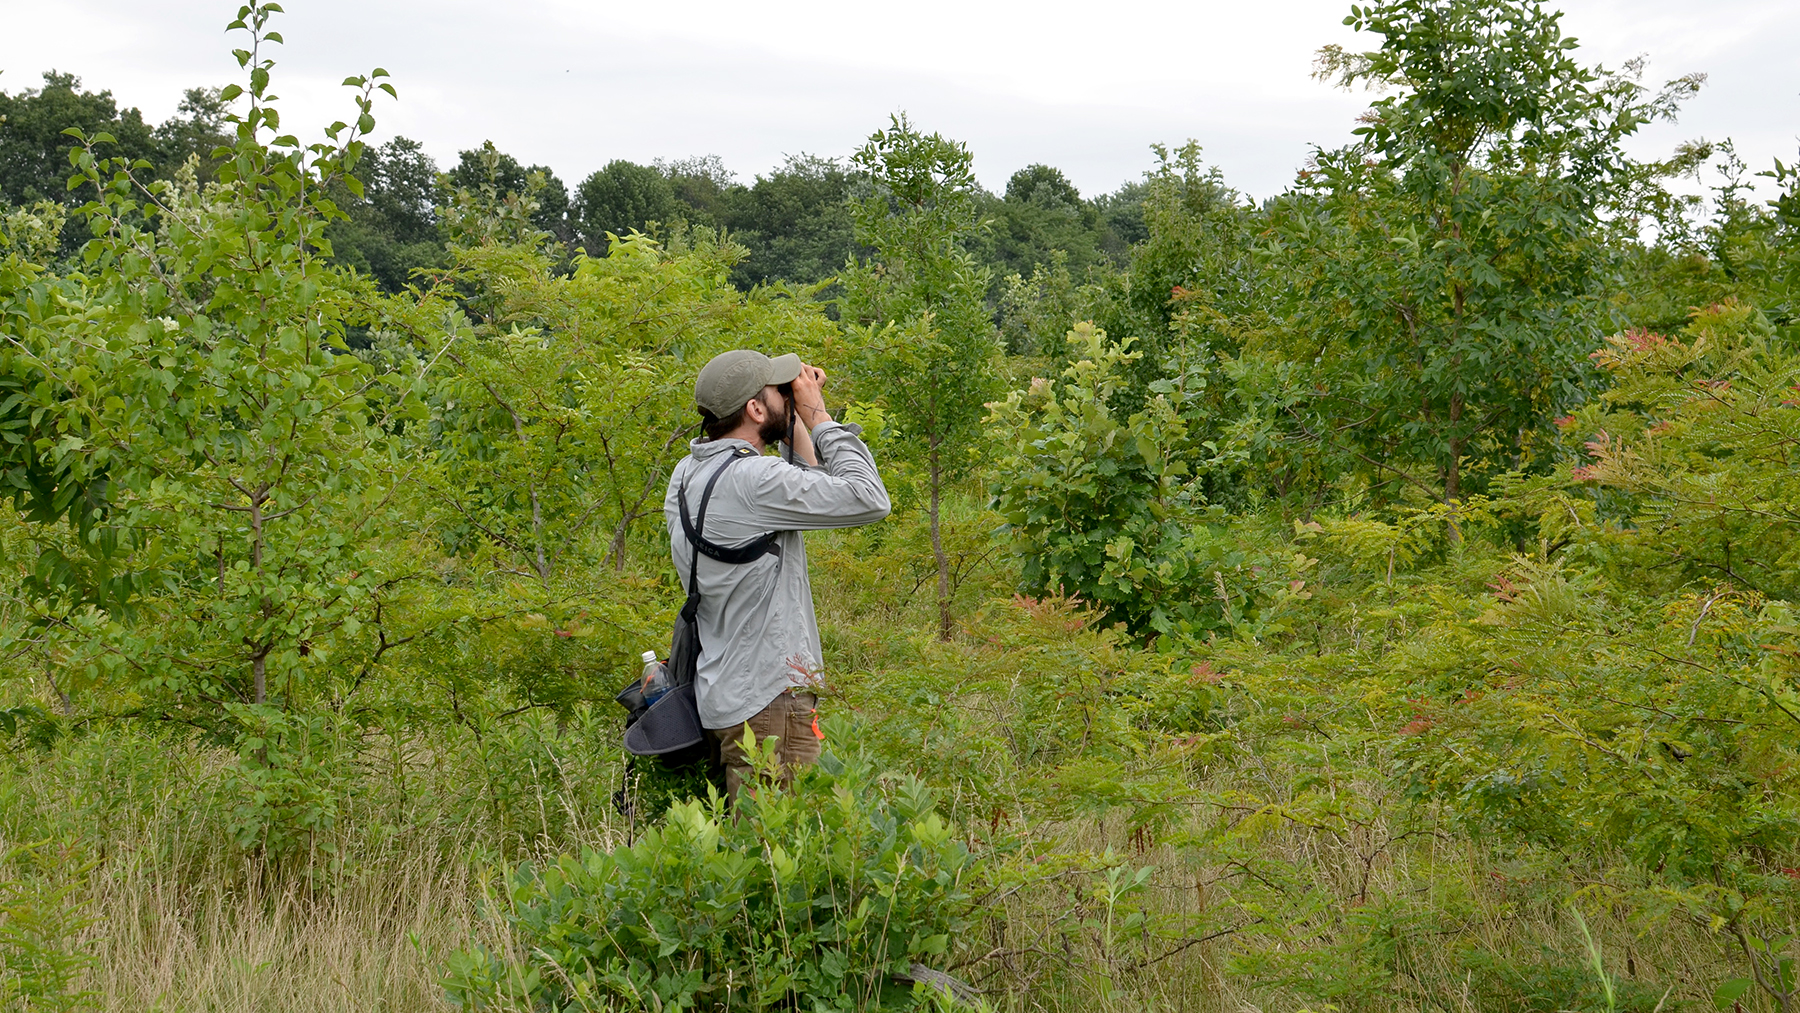 Illinois Natural History Survey avian ecologist Bryan Reiley looks for rare birds on conservation lands. Photo courtesy Bryan Reiley